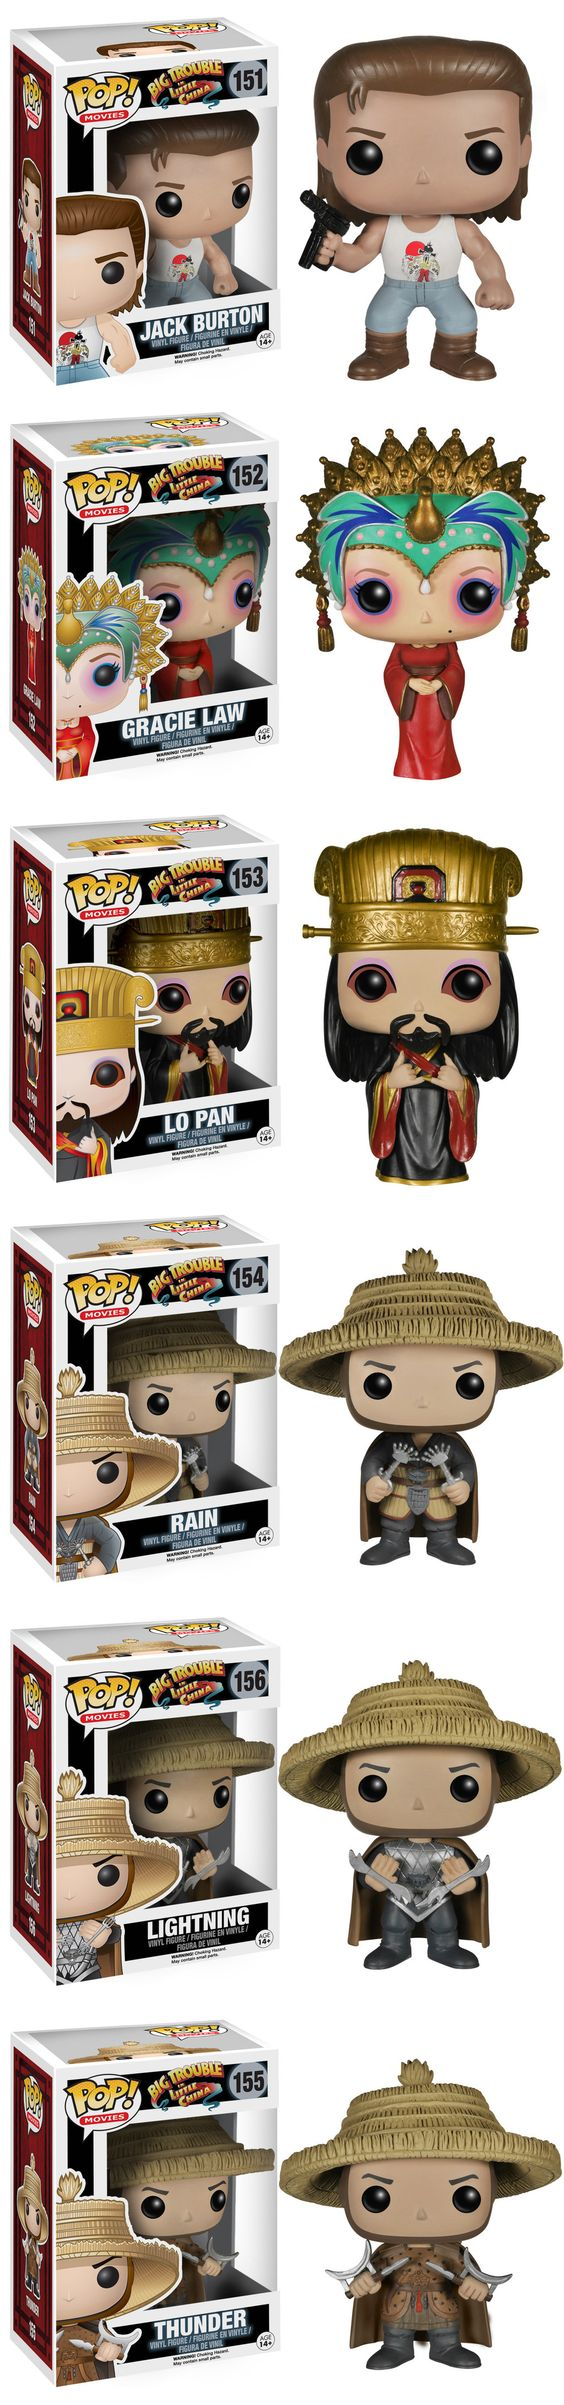 """BIG TROUBLE IN LITTLE CHINA Funko Pop! Figures """"I'm not saying that I've been everywhere and I've done everything, but I do know it's a pretty amazing planet we live on here…"""" Read More: http://geektyrant.com/news/big-trouble-in-little-china-funko-pop-figures"""